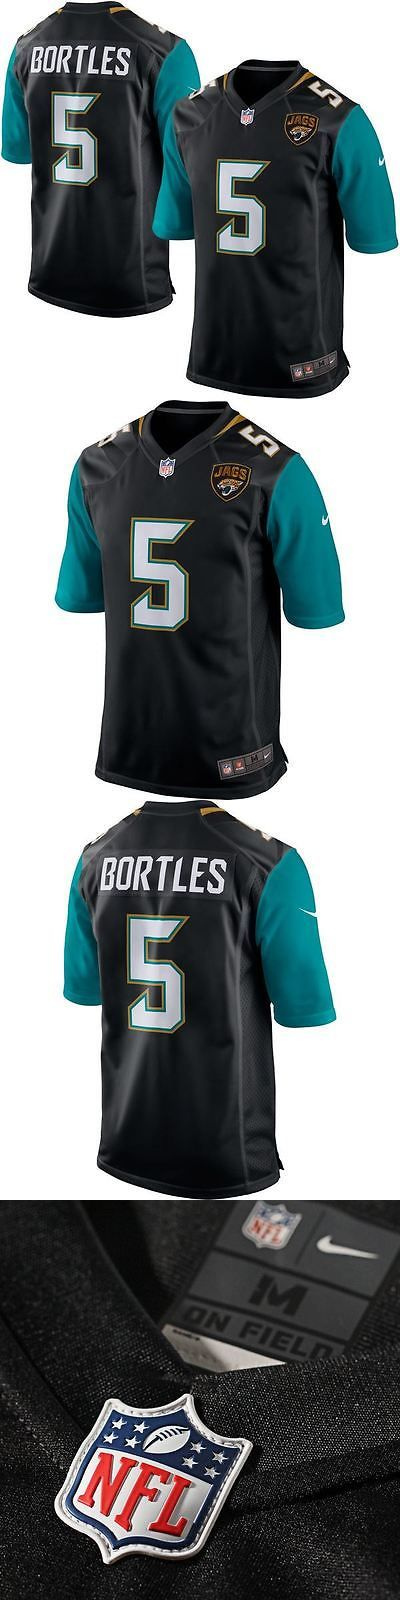 Youth 159111: Jacksonville Jaguars Jersey Blake Bortles #5 Nike Youth Game Replica Nfl Black -> BUY IT NOW ONLY: $75 on eBay!